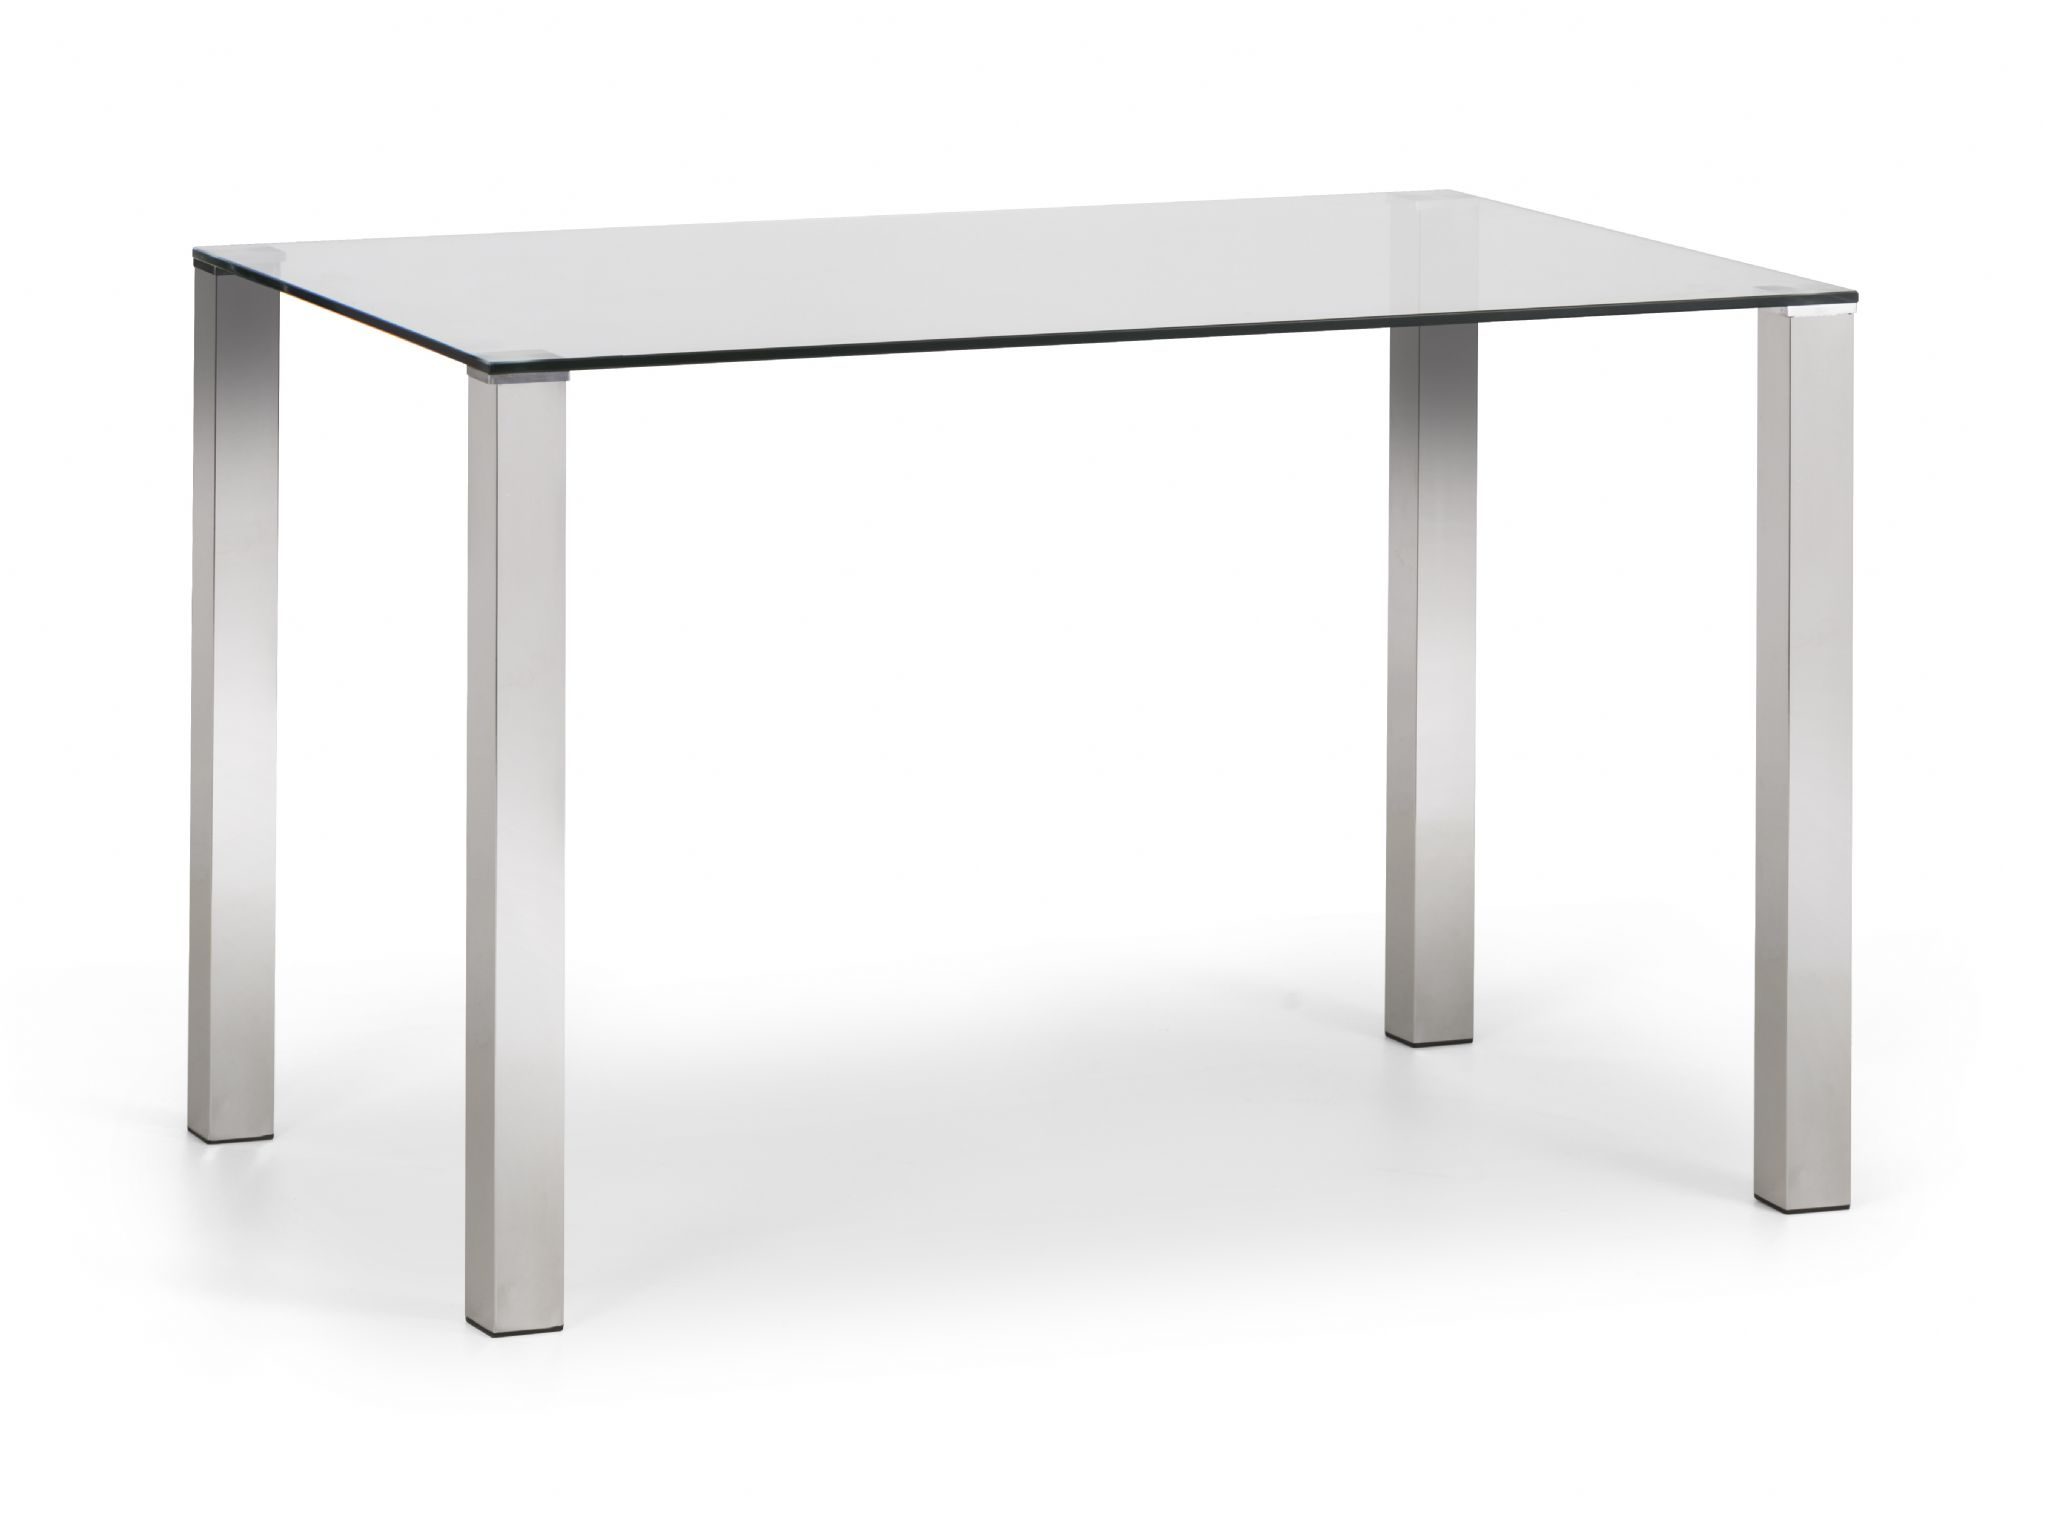 Favorite Chrome Dining Tables With Tempered Glass In Veneto Modern Chrome & Tempered Glass Dining Table Jb (View 5 of 25)